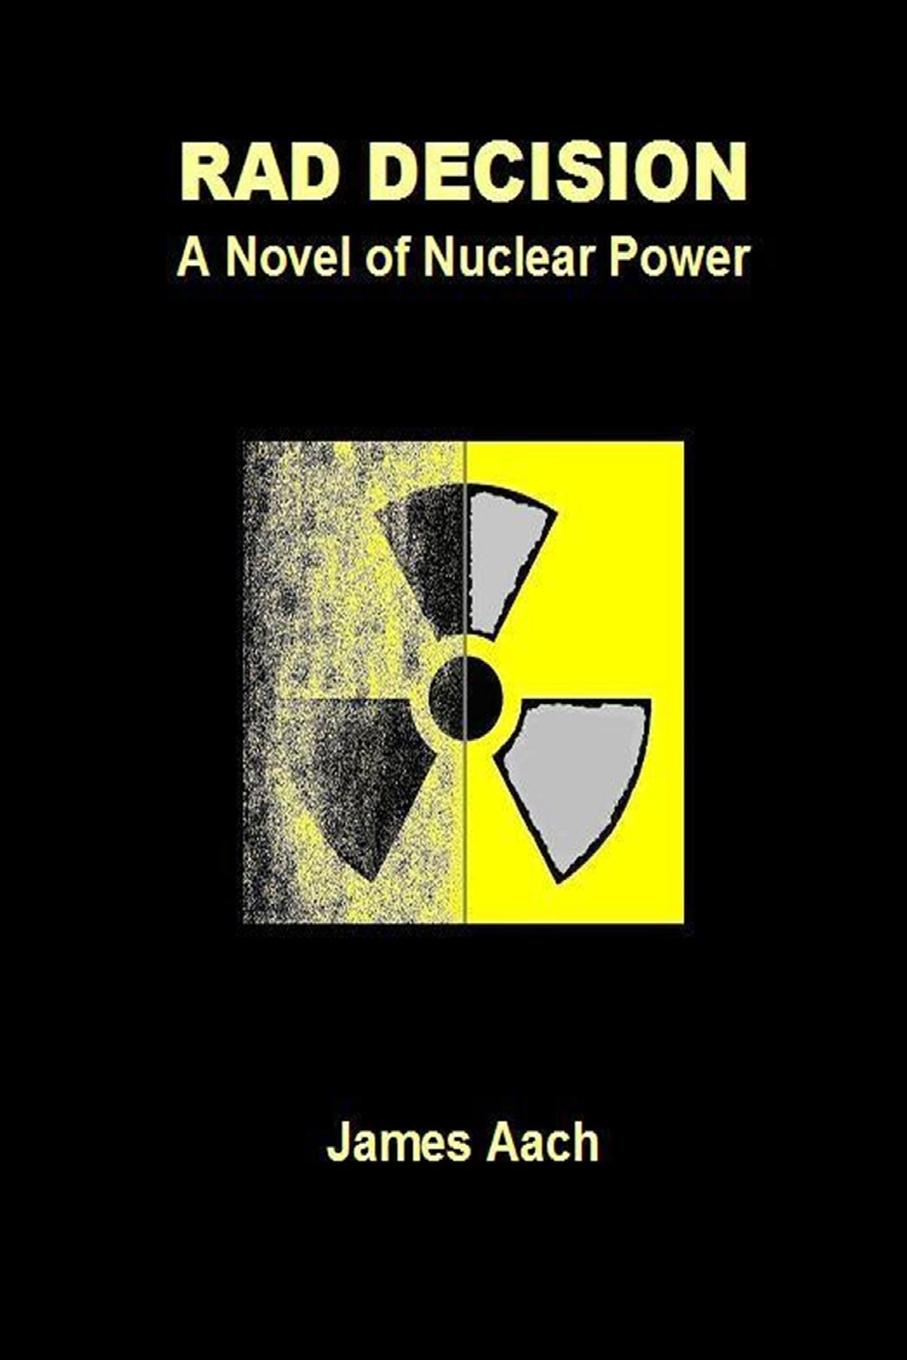 James Aach Rad Decision. A Novel of Nuclear Power denis stein marion preuß nina höhne economical implications of shutdowns of nuclear power in germany